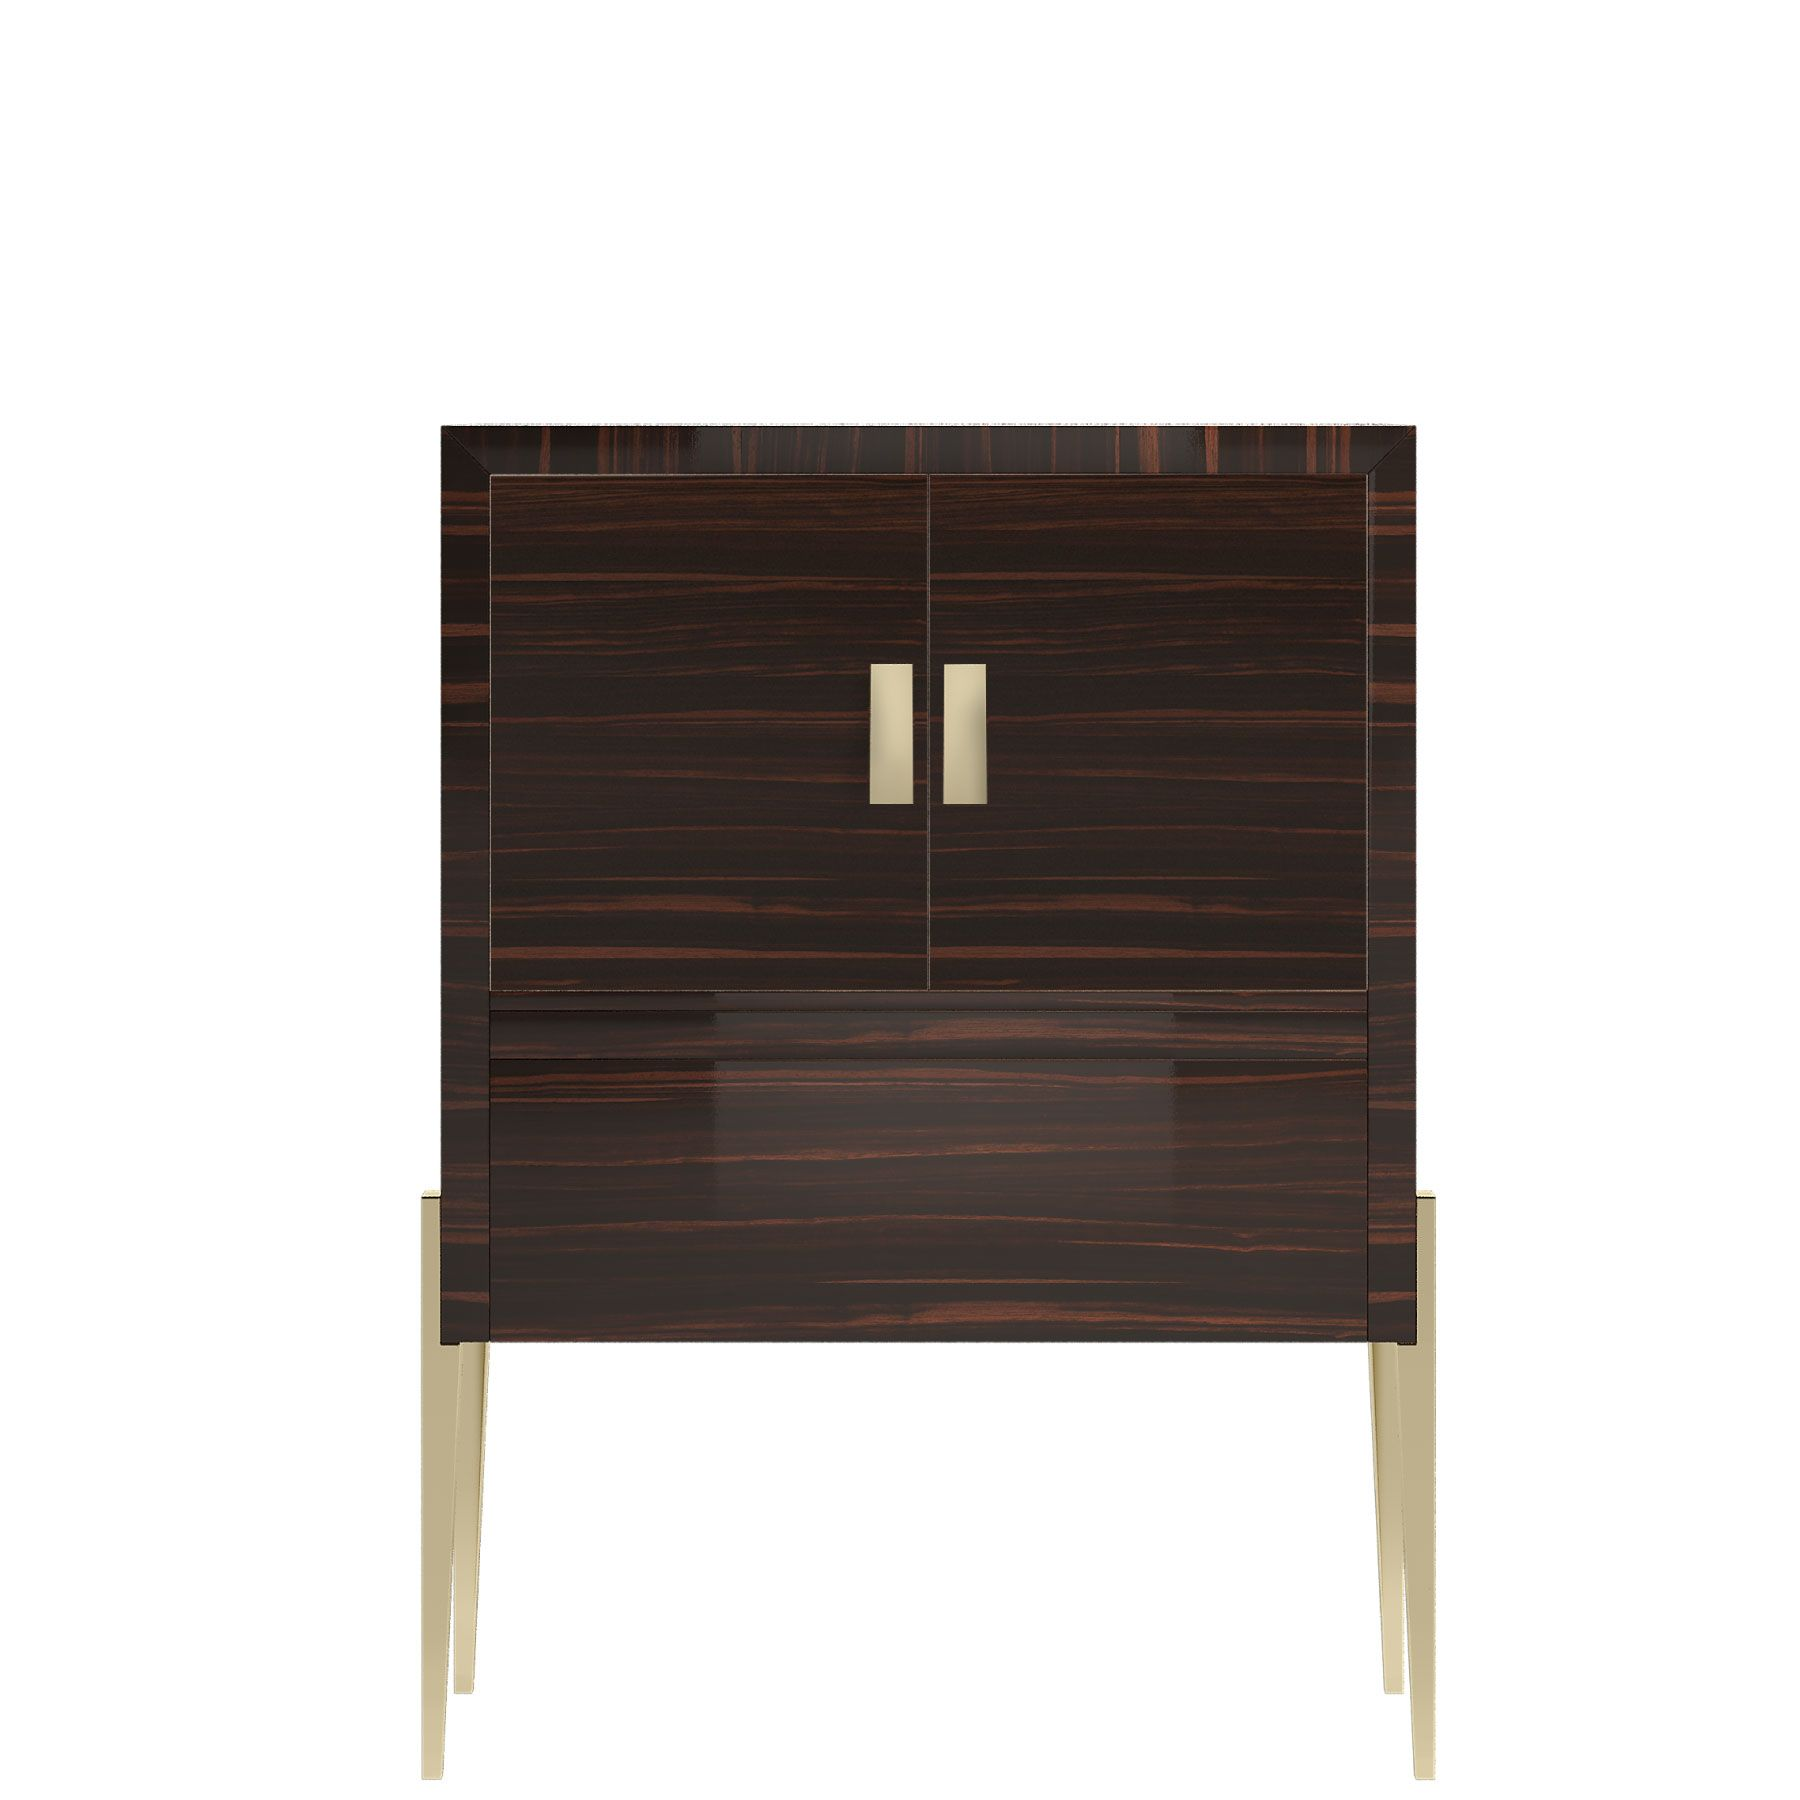 Charme 2D (With images) Home decor, Interior, Luxury design